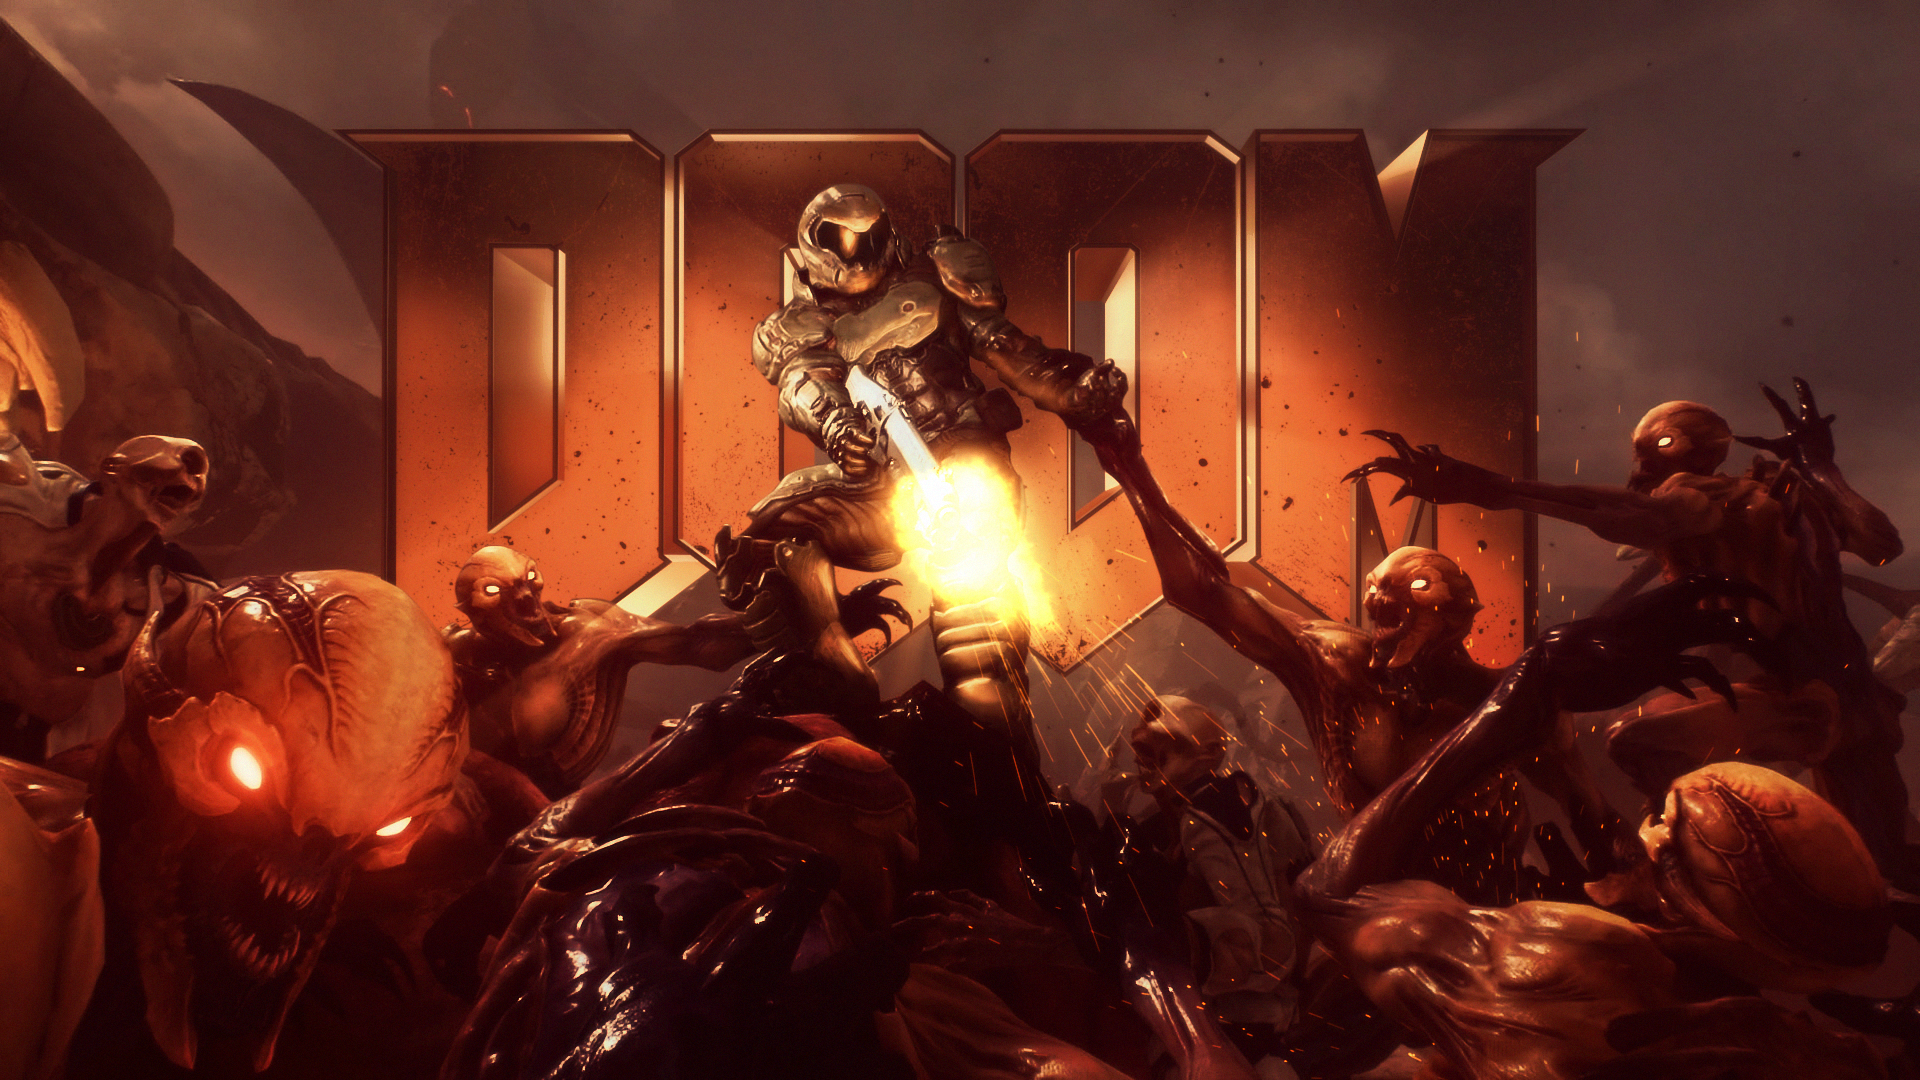 Classic Doom 2016 Wallpaper Doom 2016, Doom 4, Games